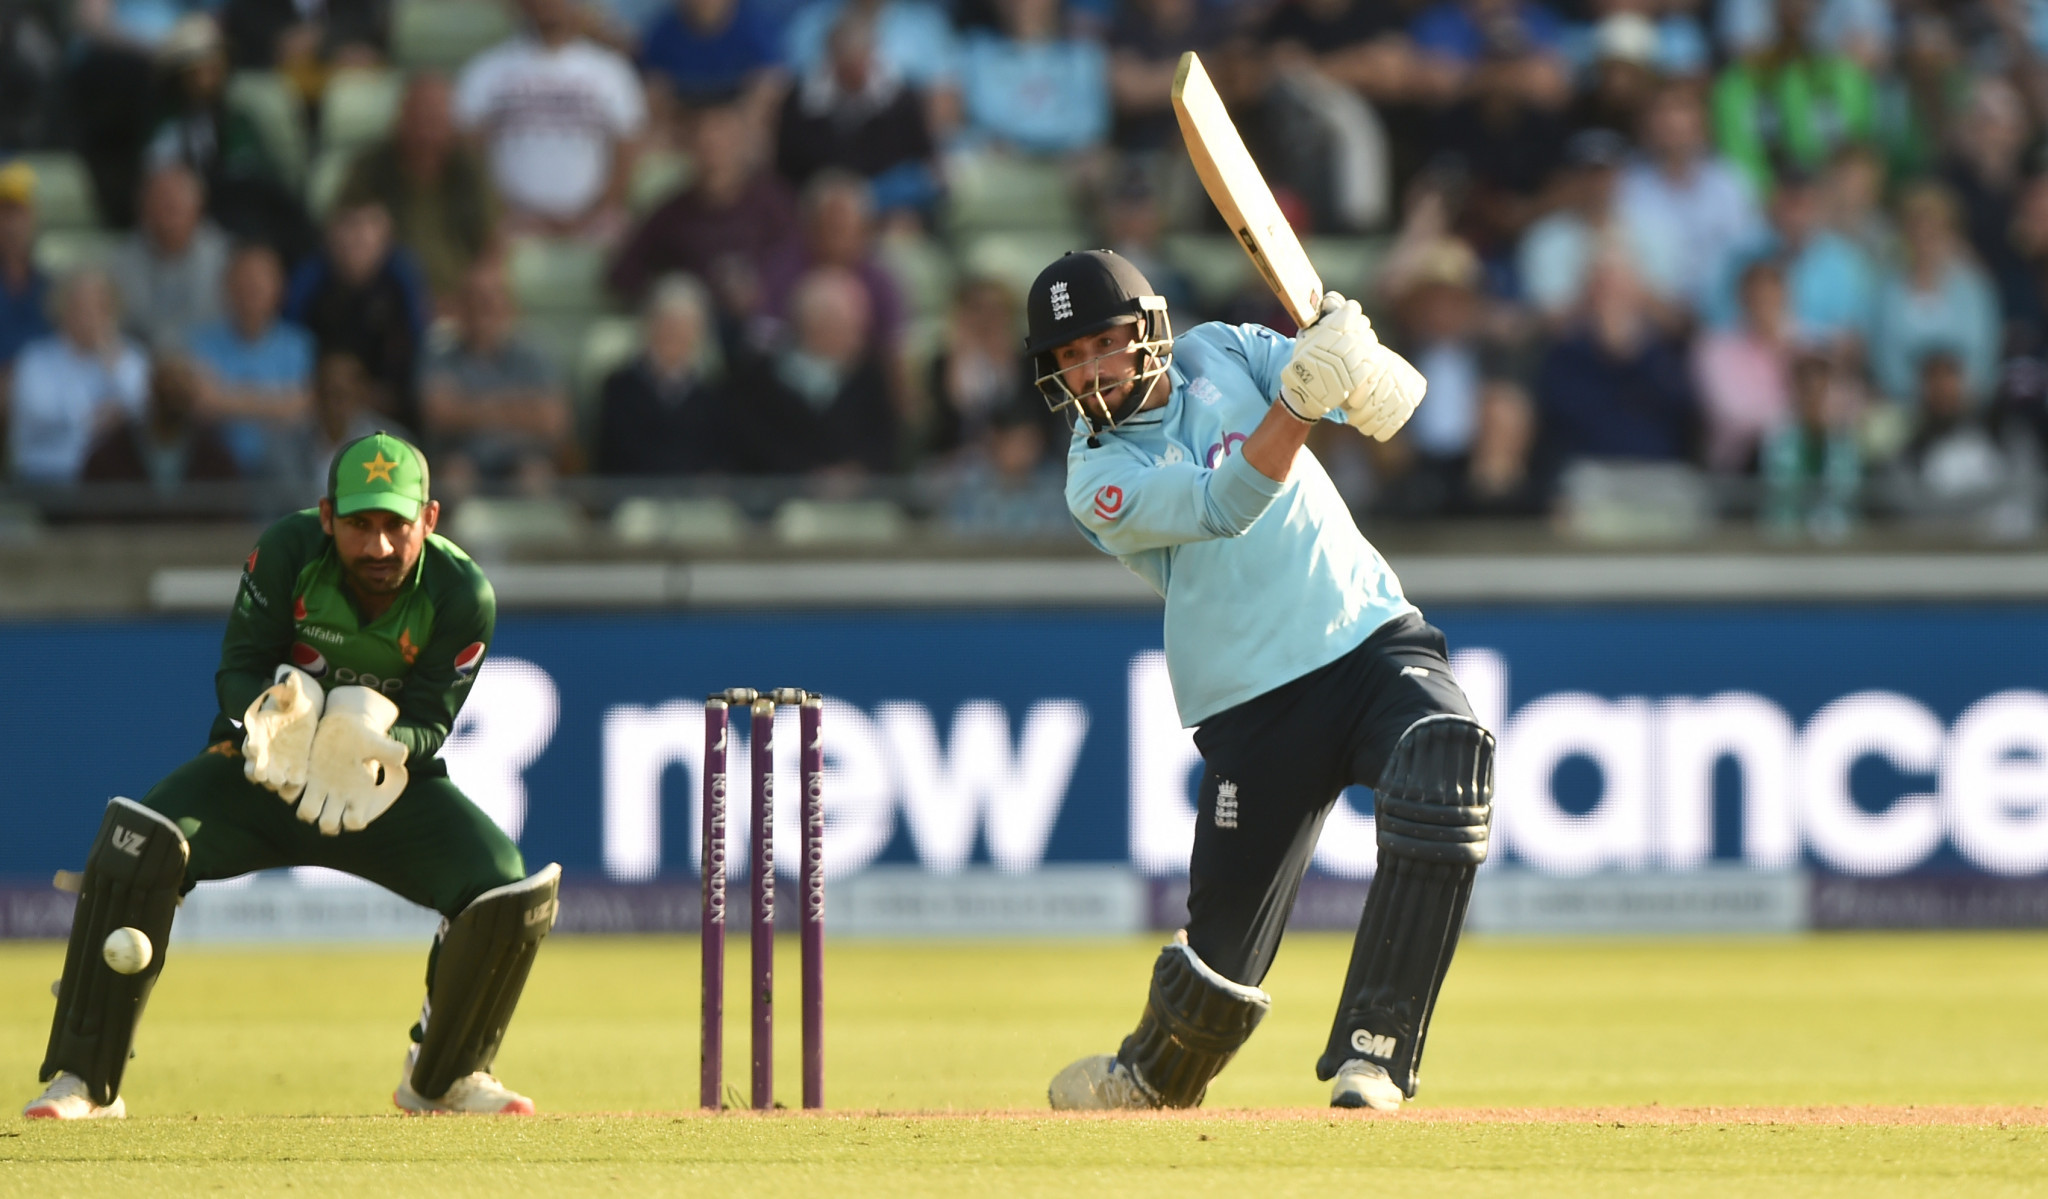 England won their one-day series with Pakistan 3-0, despite having to name an entirely new squad due to COVID-19 positives ©Getty Images